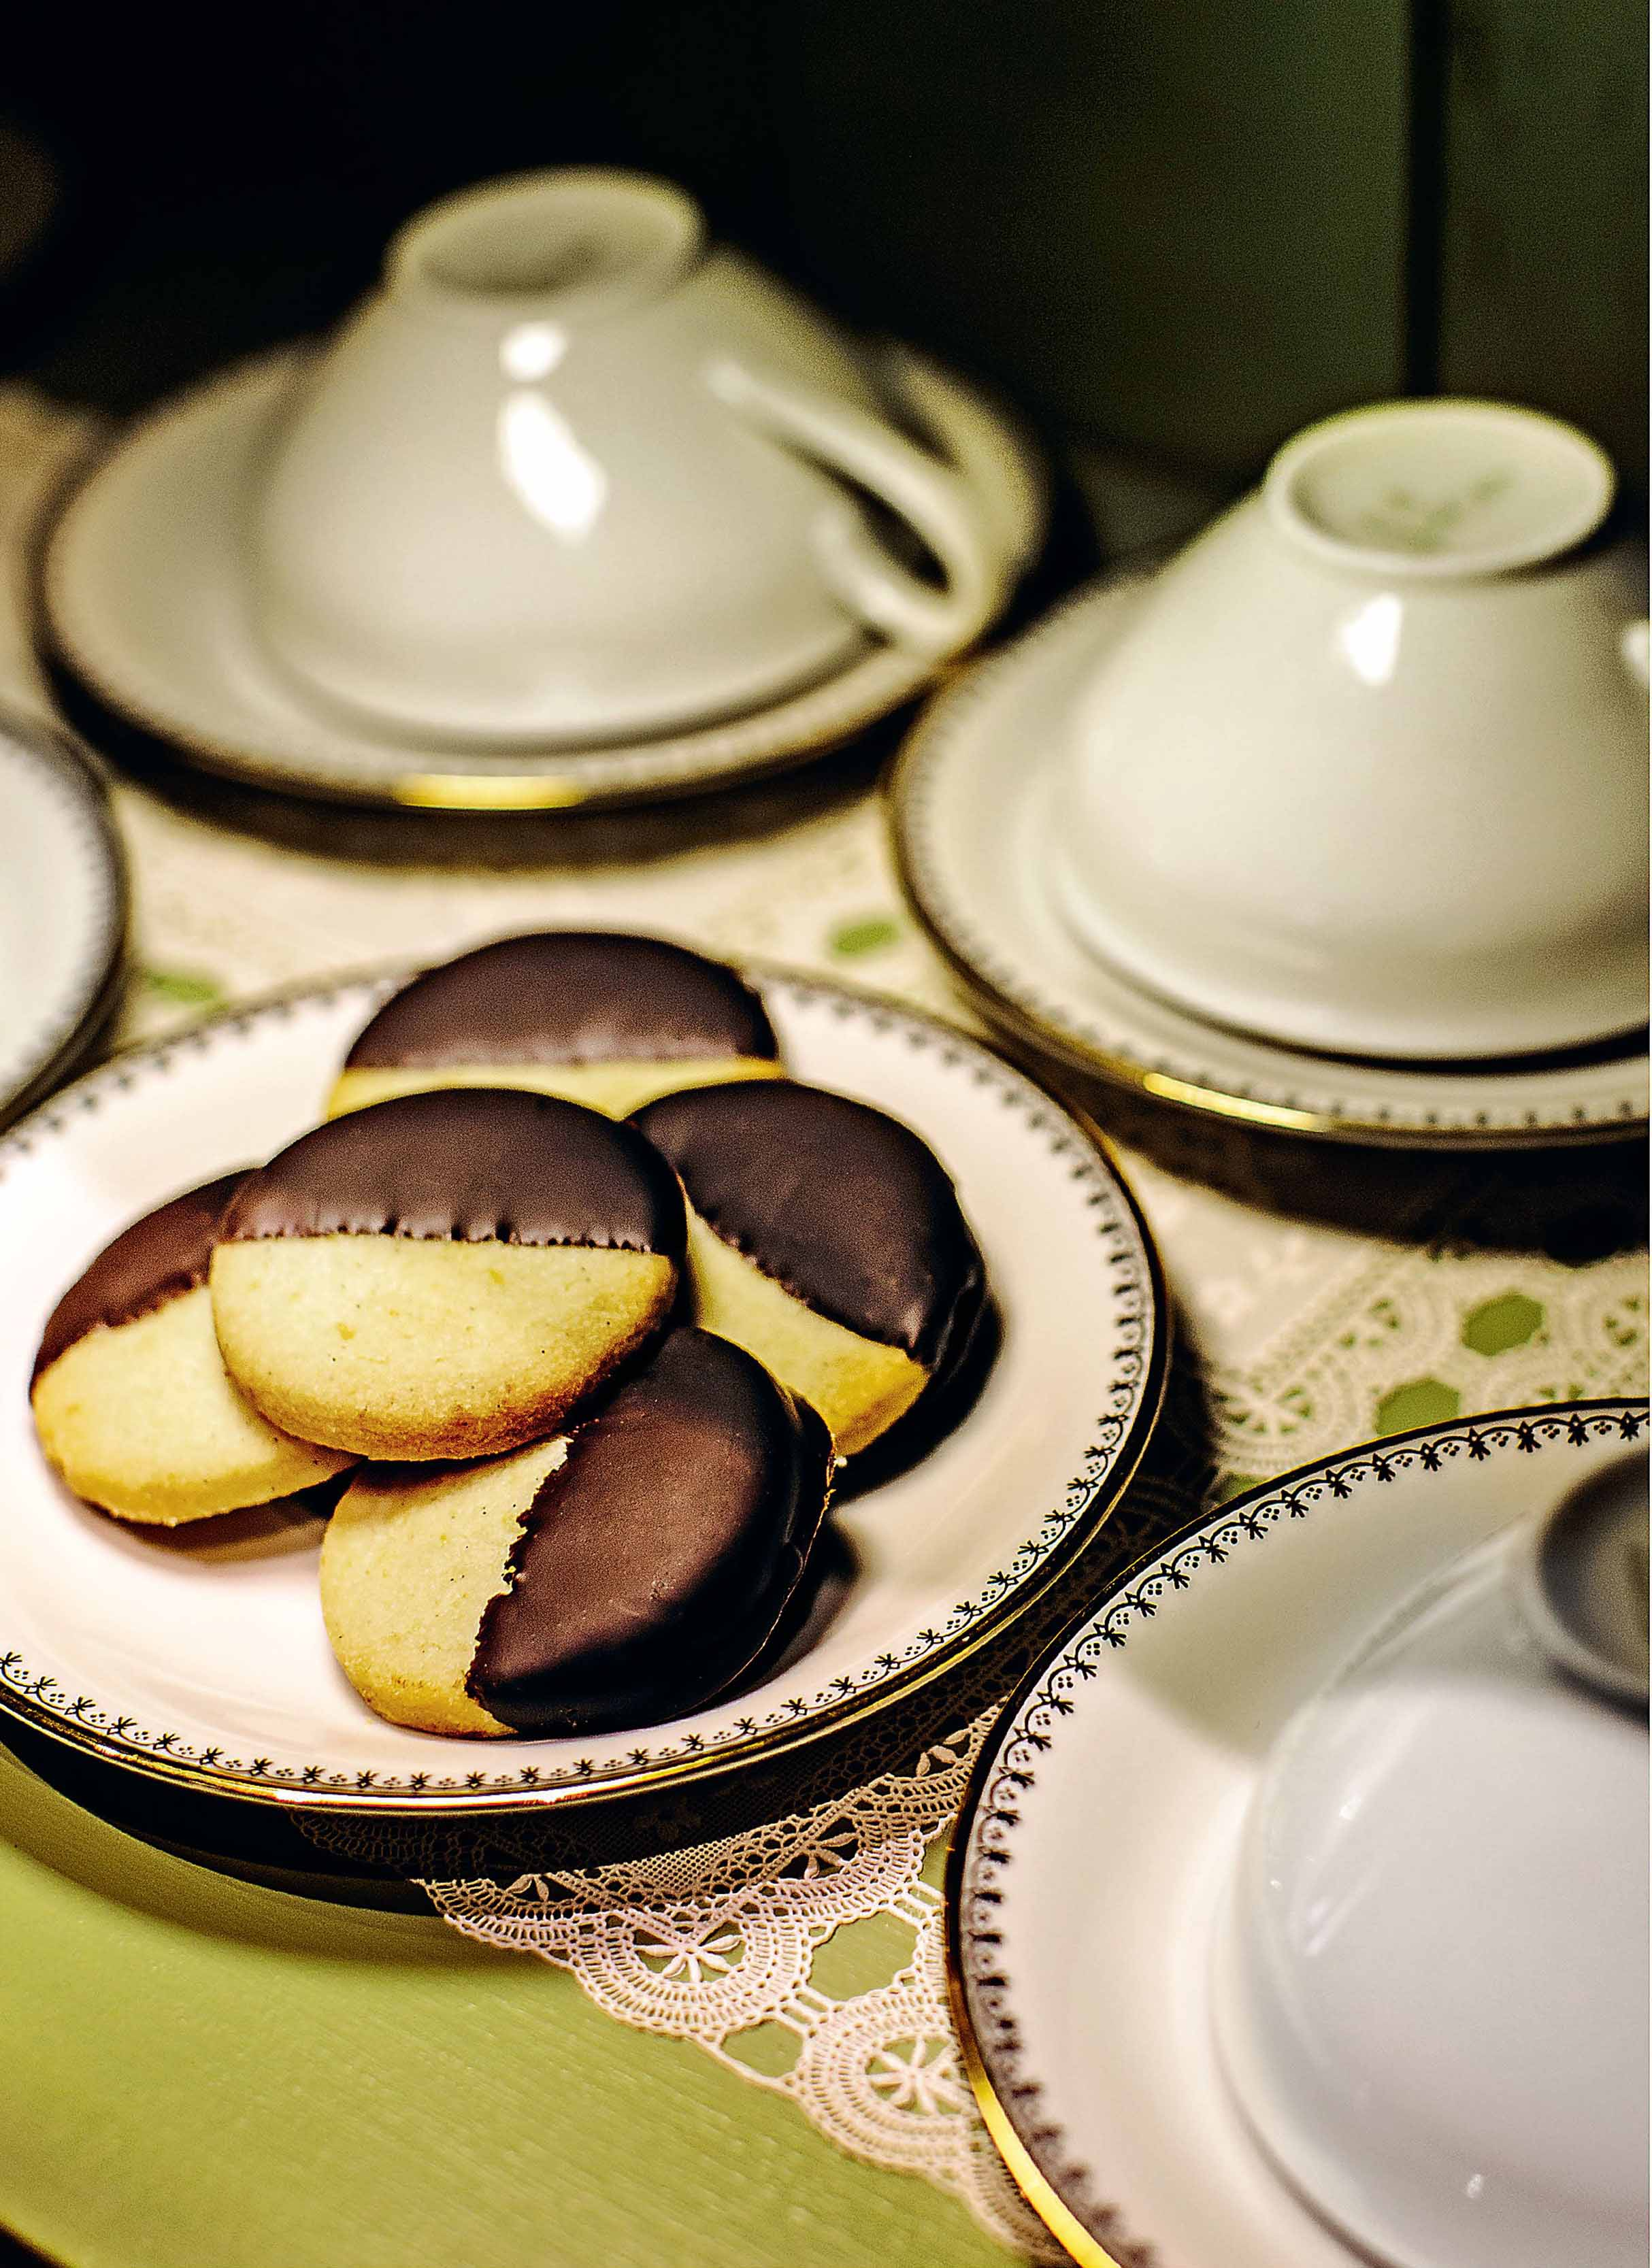 Orange and chocolate shortbread cookies